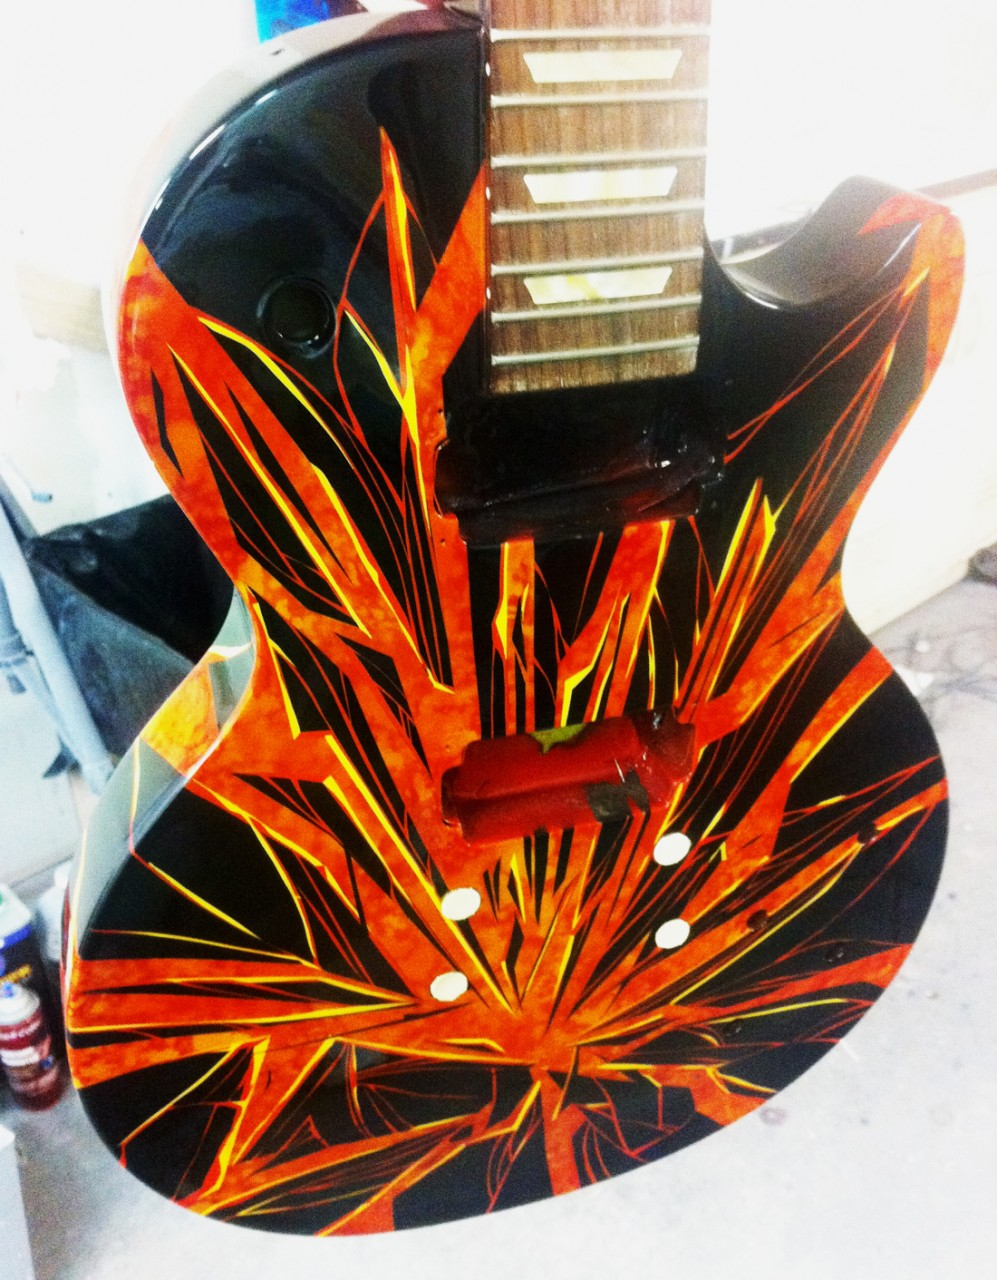 custom-painted-guitar-broken-glass-airbrush2